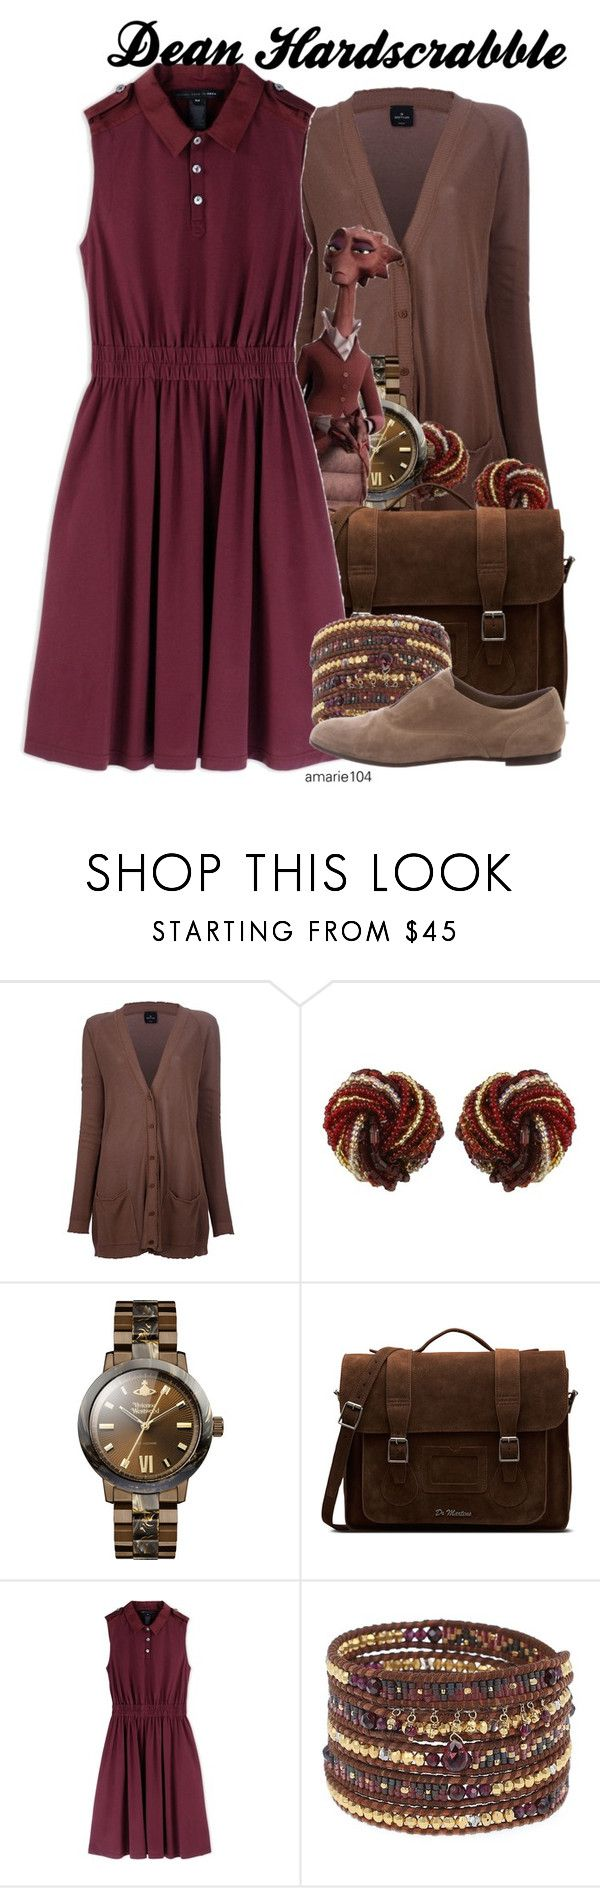 """Dean Hardscrabble"" by amarie104 ❤ liked on Polyvore featuring Gotha, Vivienne Westwood, Dr. Martens, Marc by Marc Jacobs, Chan Luu and Gianvito Rossi"